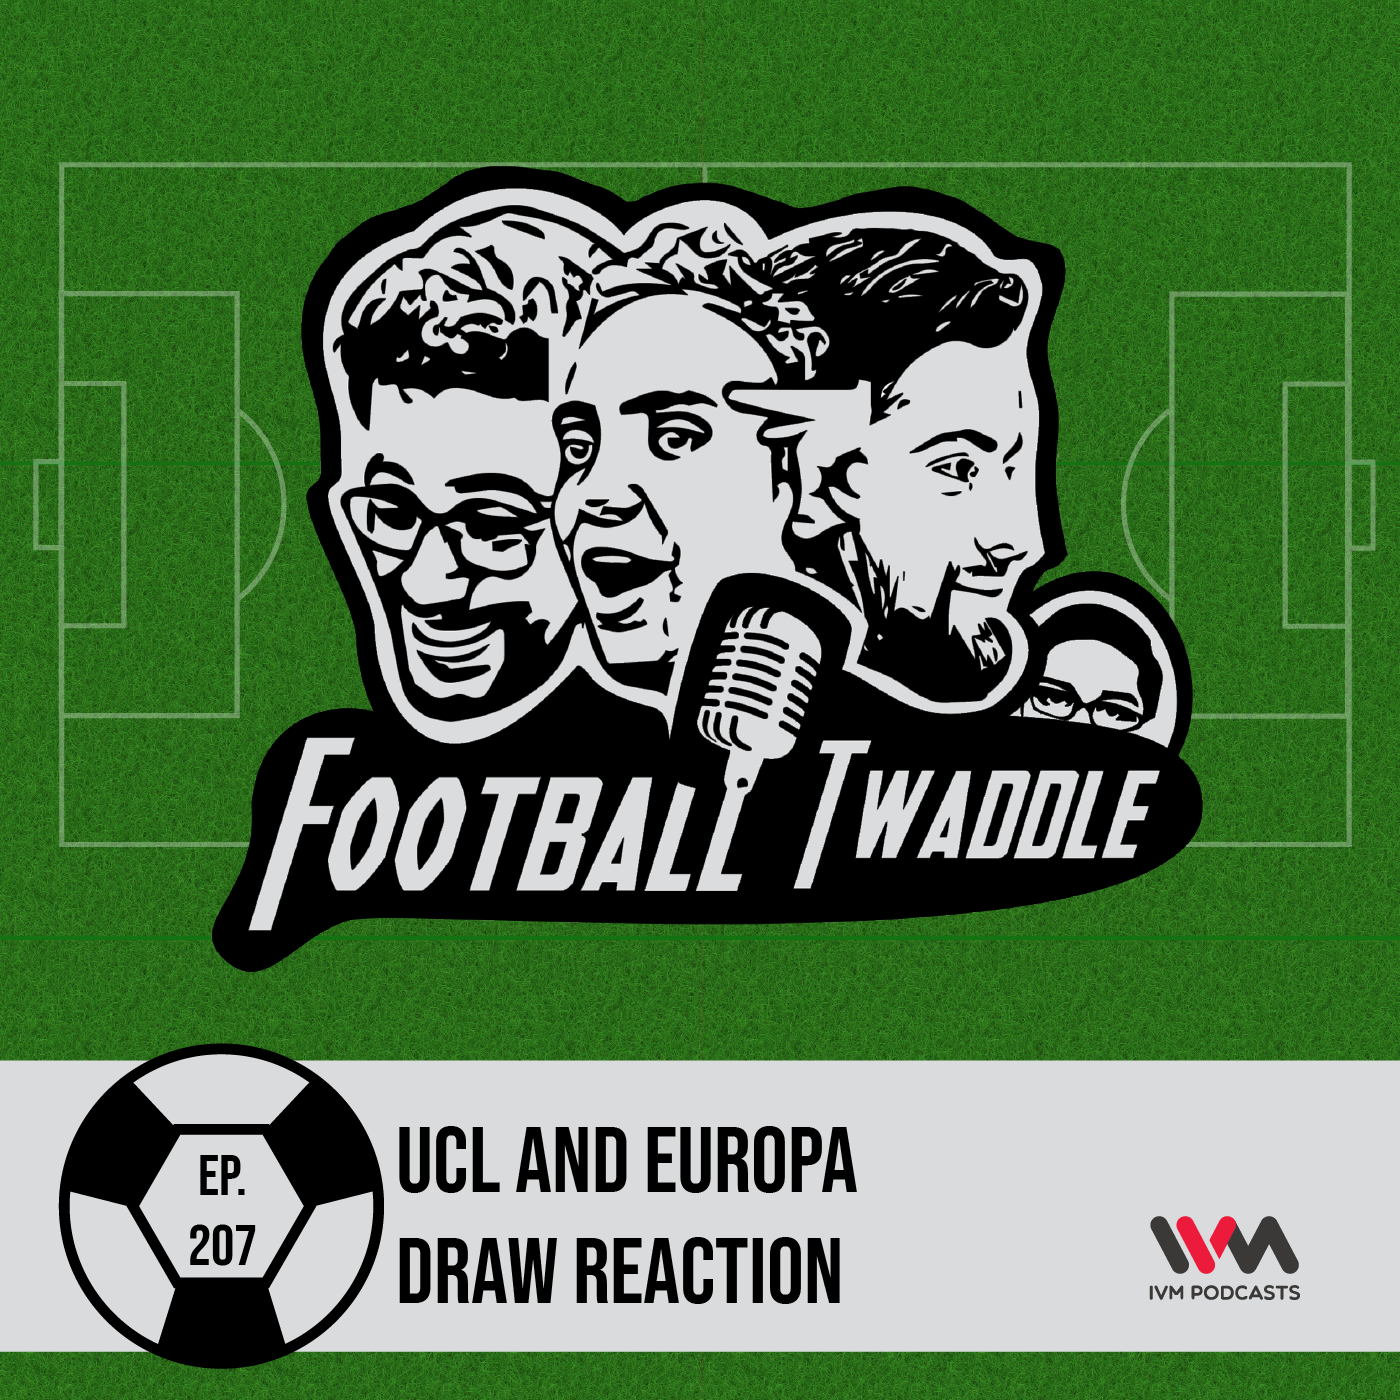 UCL and Europa Draw Reaction